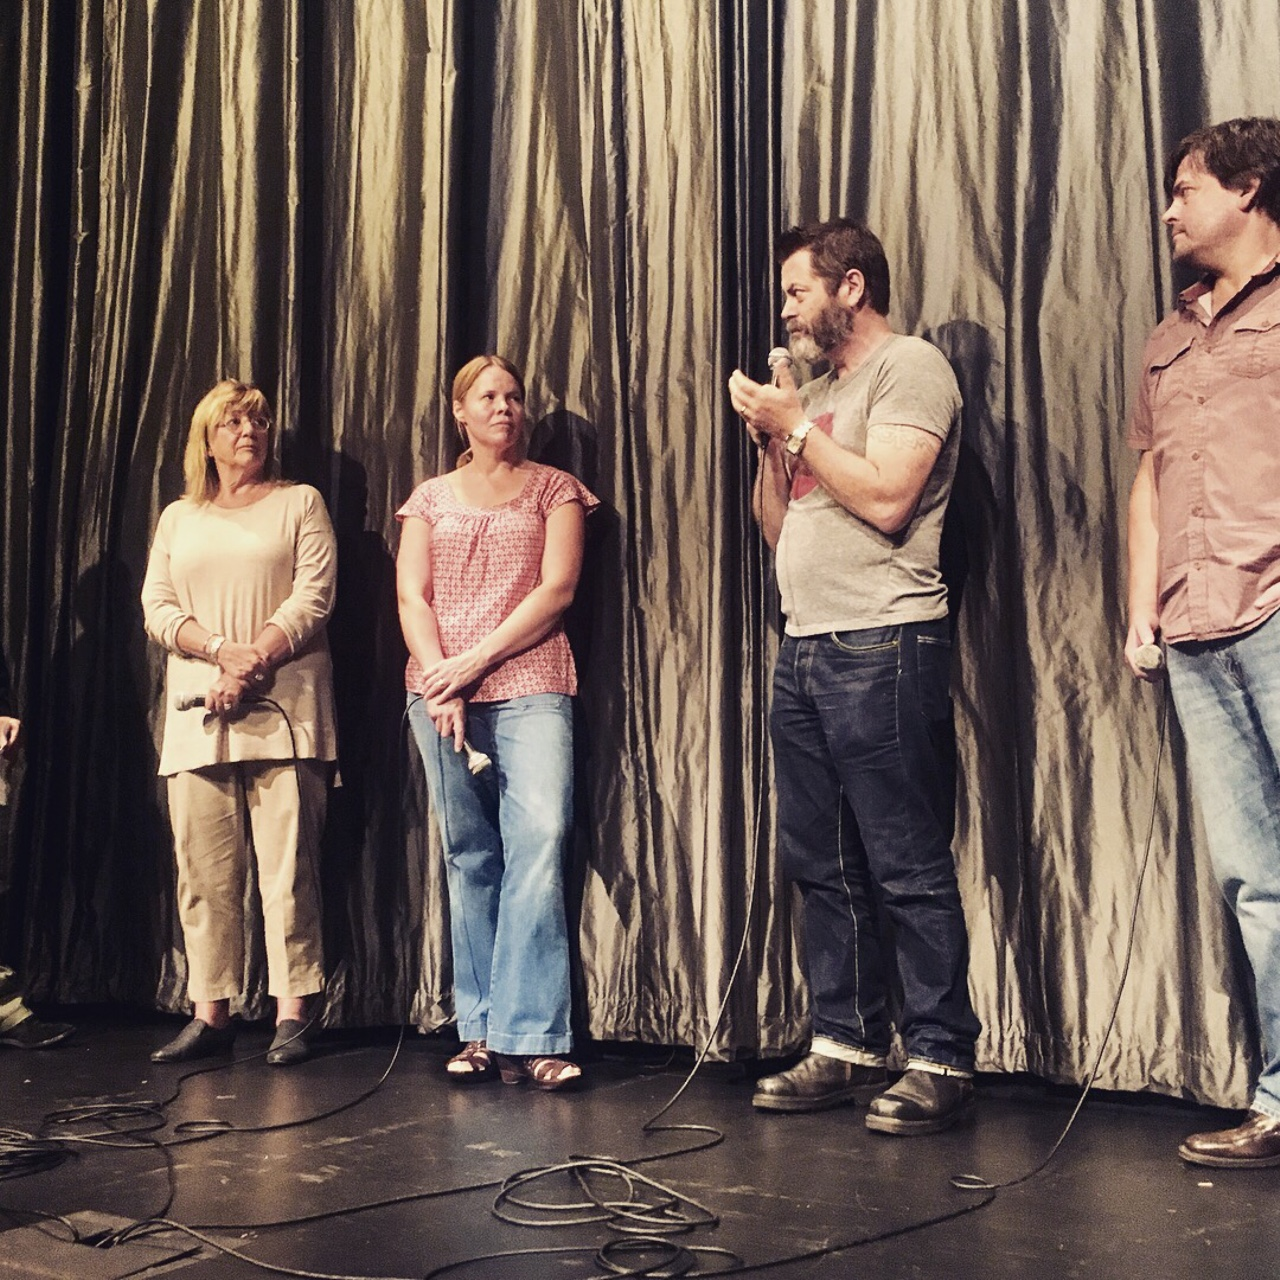 Mary Berry, Laura Dunn, Nick Offerman, Jef Sewell